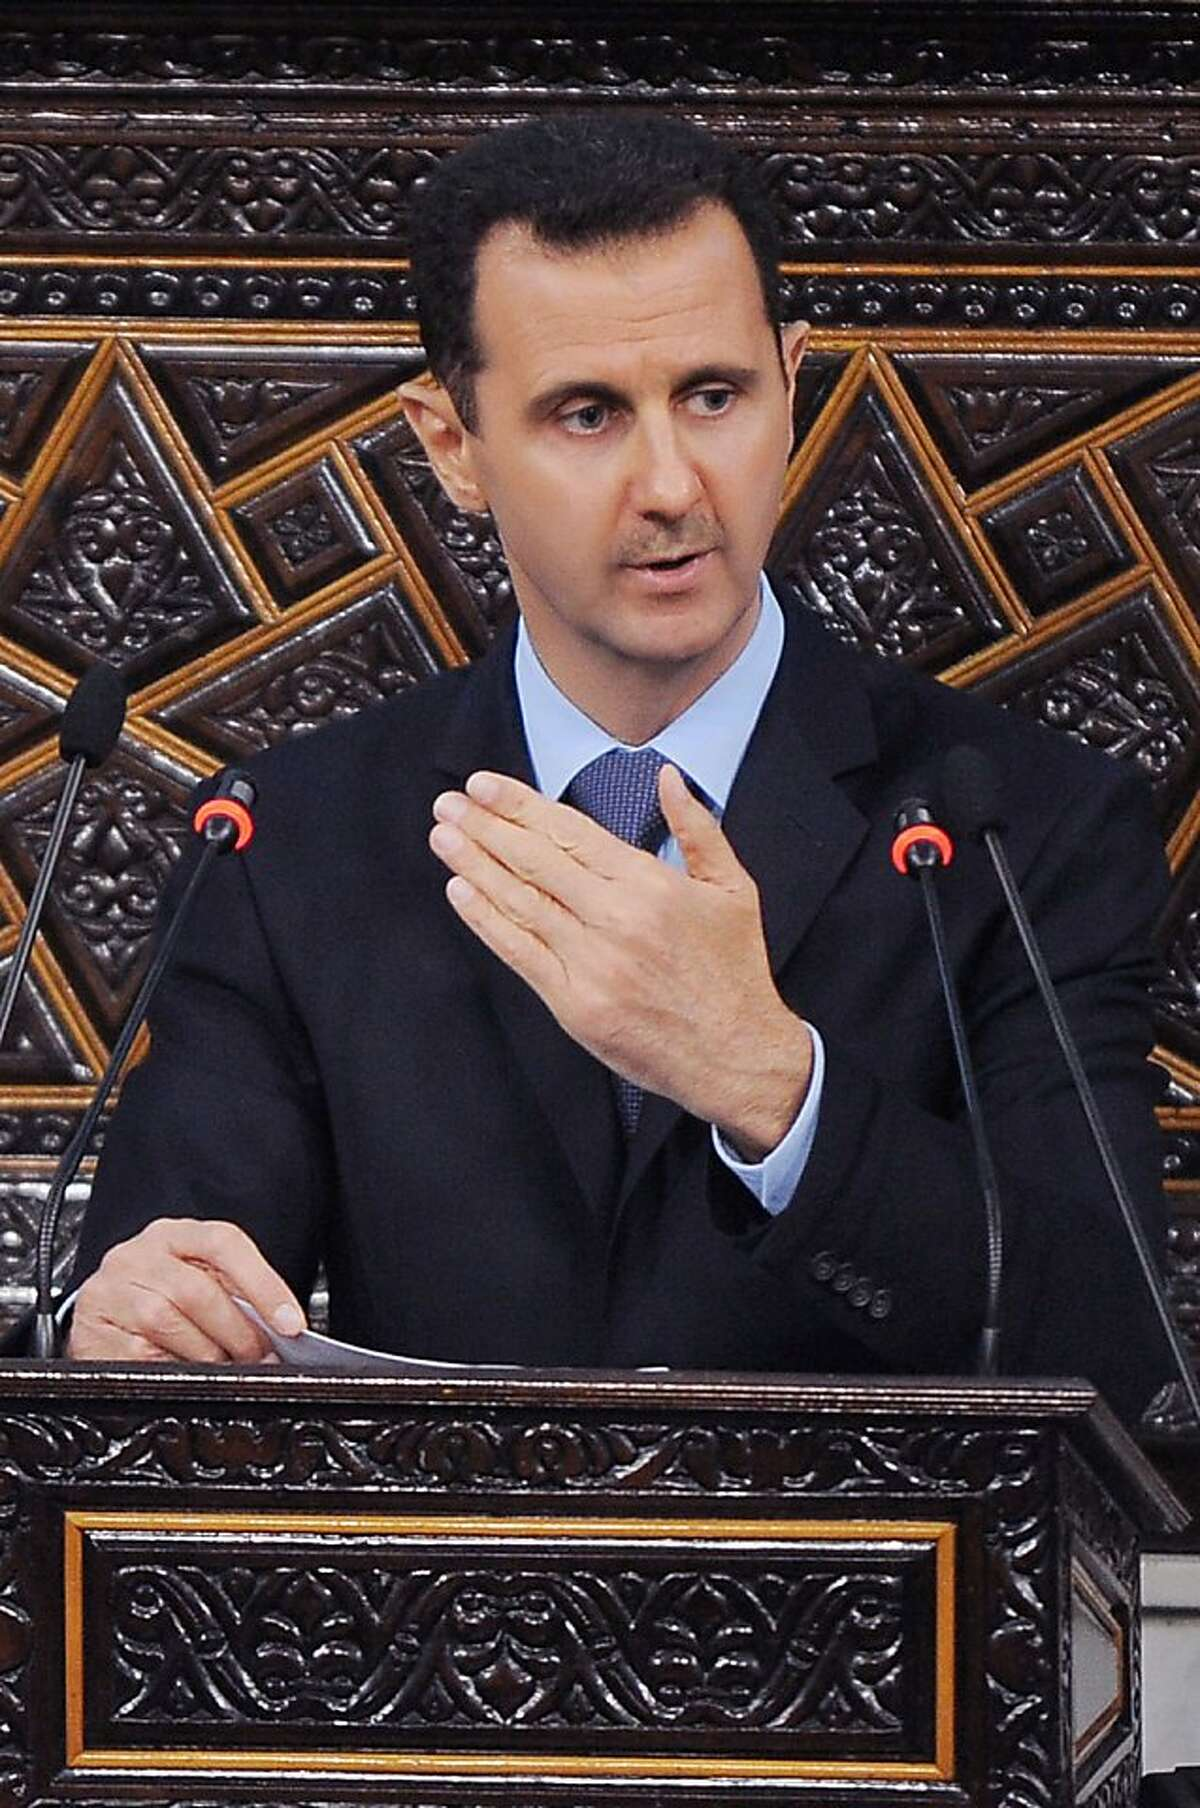 In this March 30, 2011 file photo released by the Syrian official news agency SANA, Syrian President Bashar Assad, addresses the Parliament, in Damascus, Syria. U.S. officials said Wednesday, May 18, 2011 that the Obama administration will slap sanctions on Syrian President Bashar Assad and six others for human rights abuses over their brutal crackdown on anti-government protests, for the first time personally penalizing the Syrian leader for the actions of his security forces.